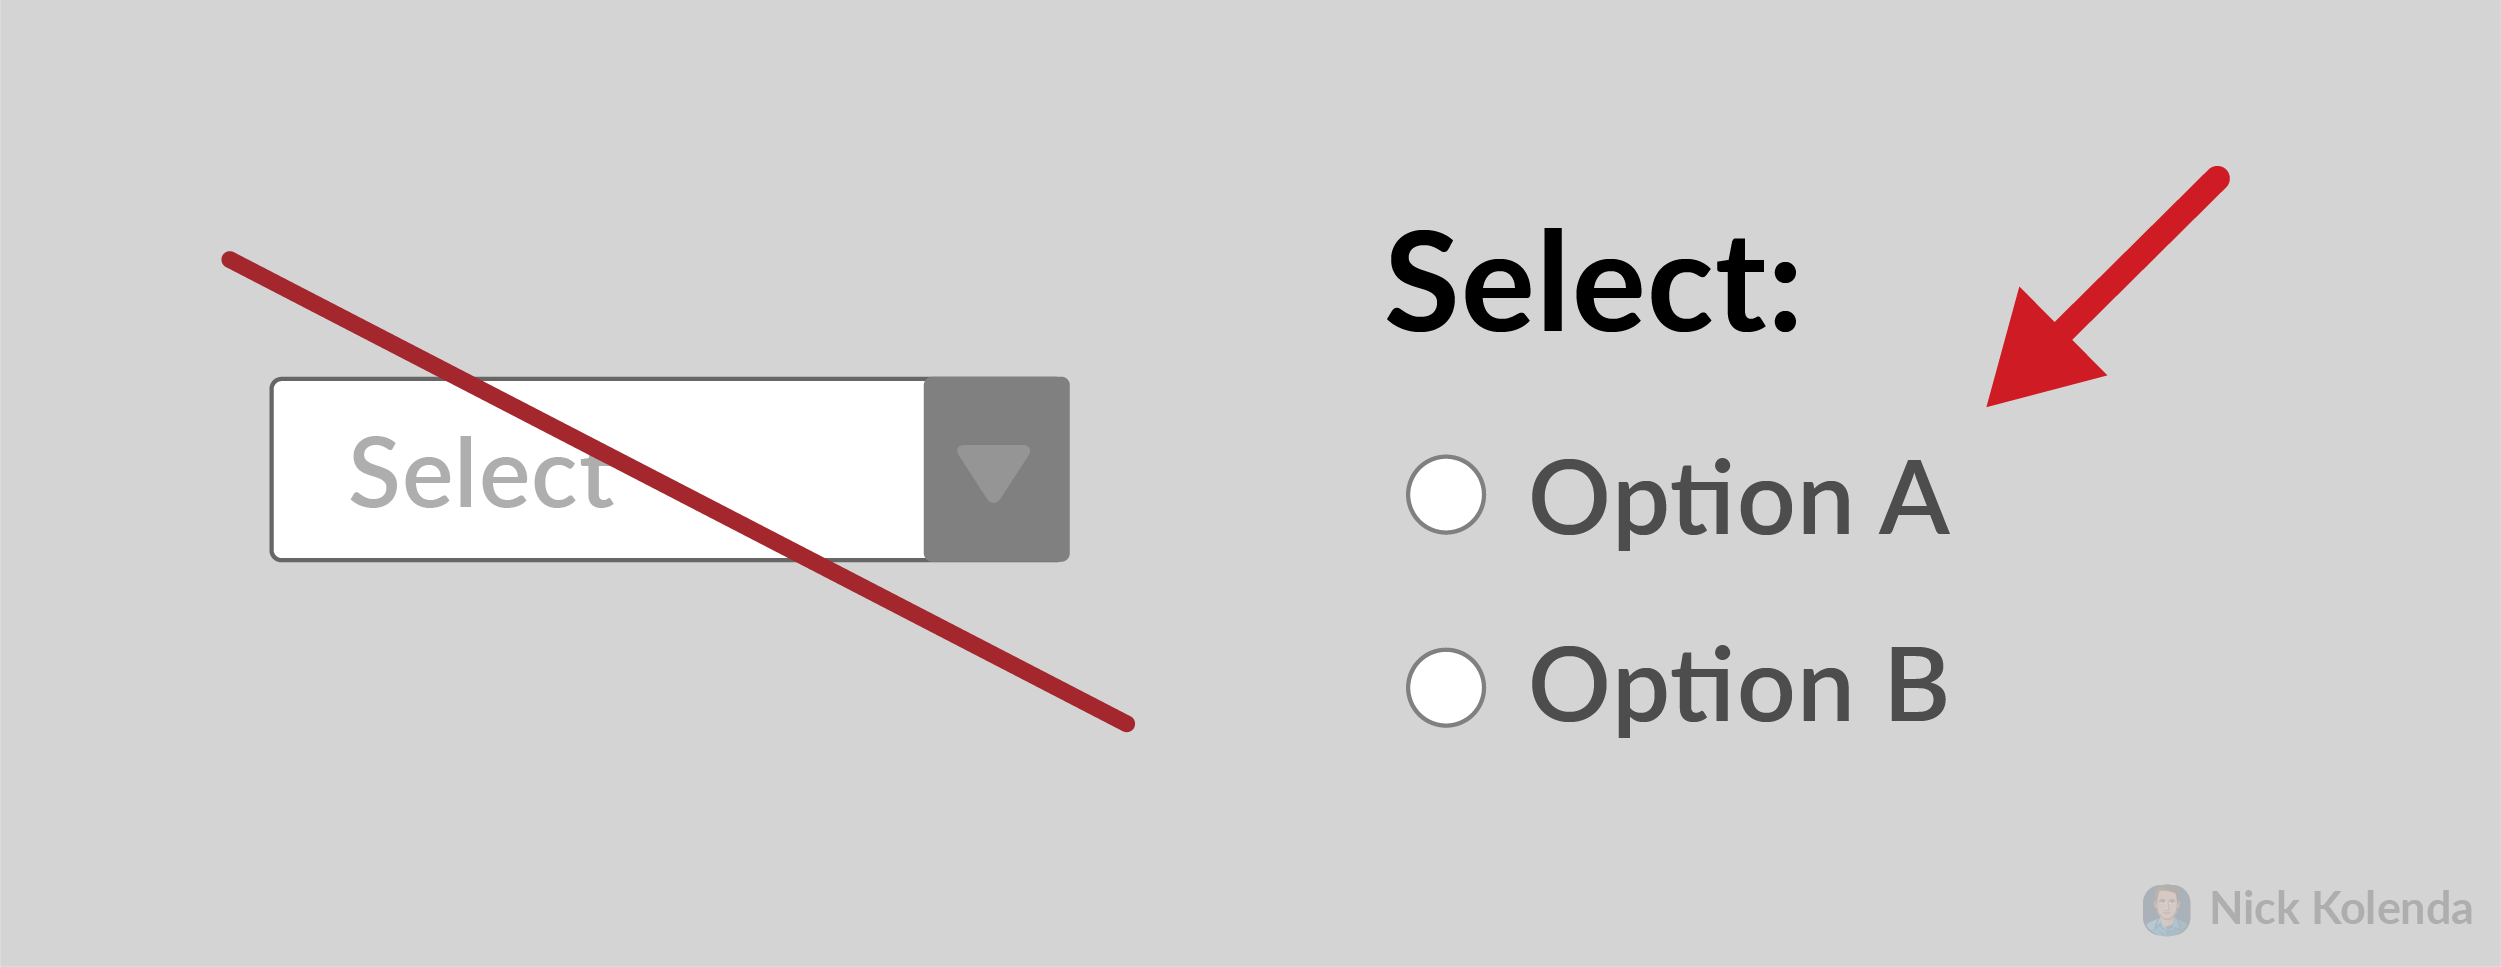 Two options in radio buttons (rather than inside a drop down menu)